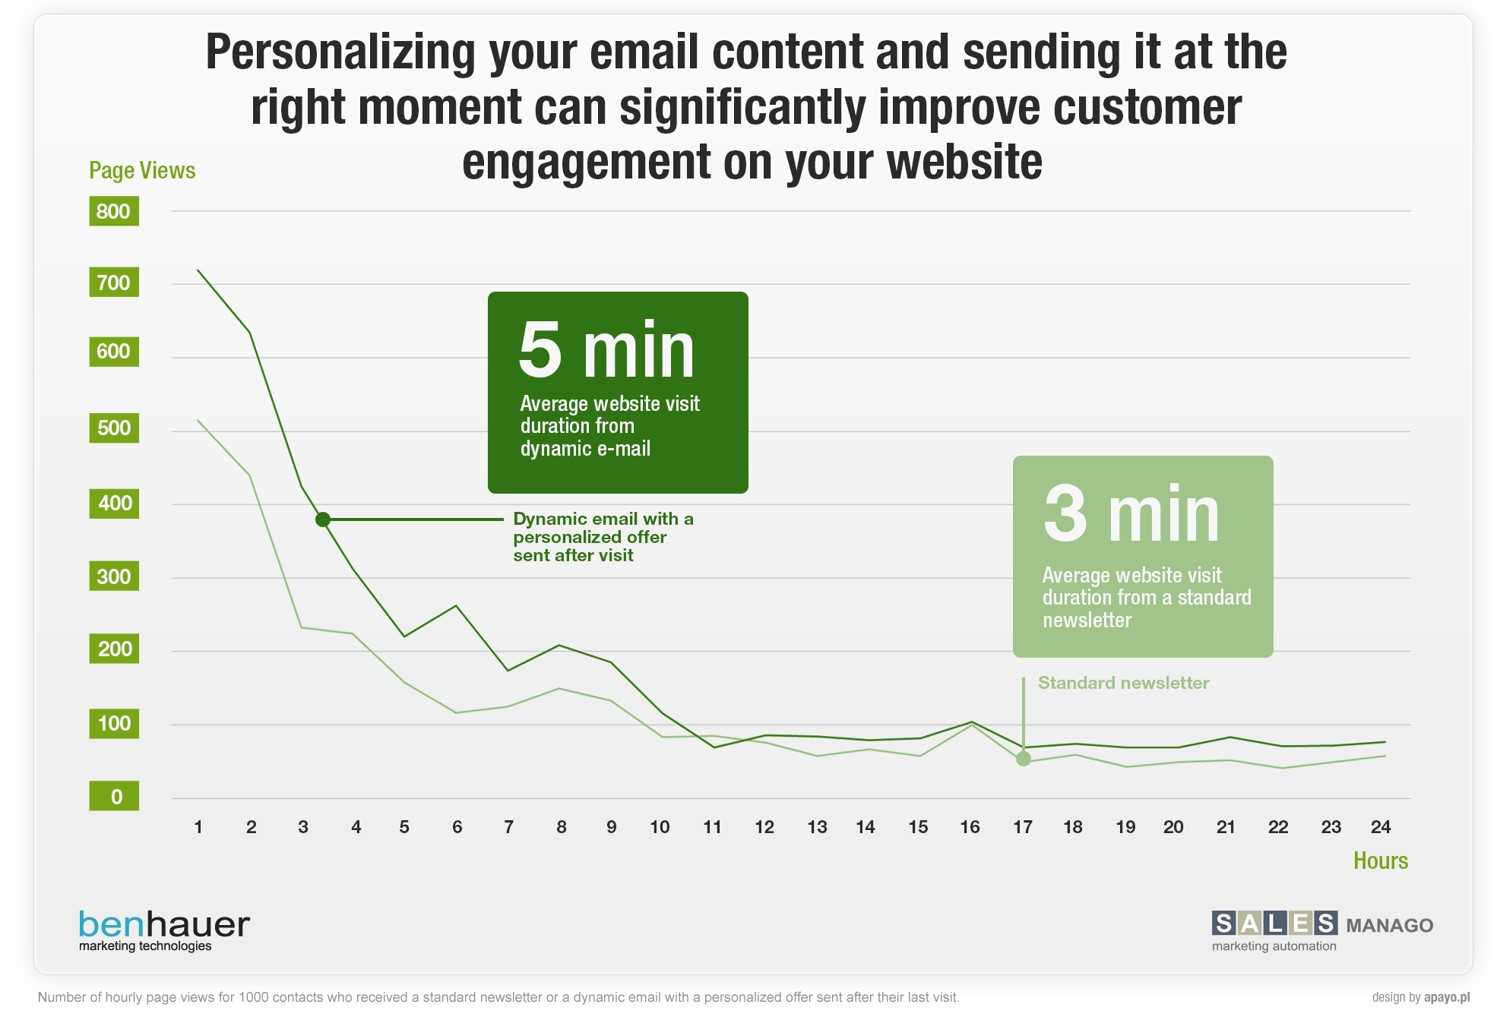 Personalizing email content